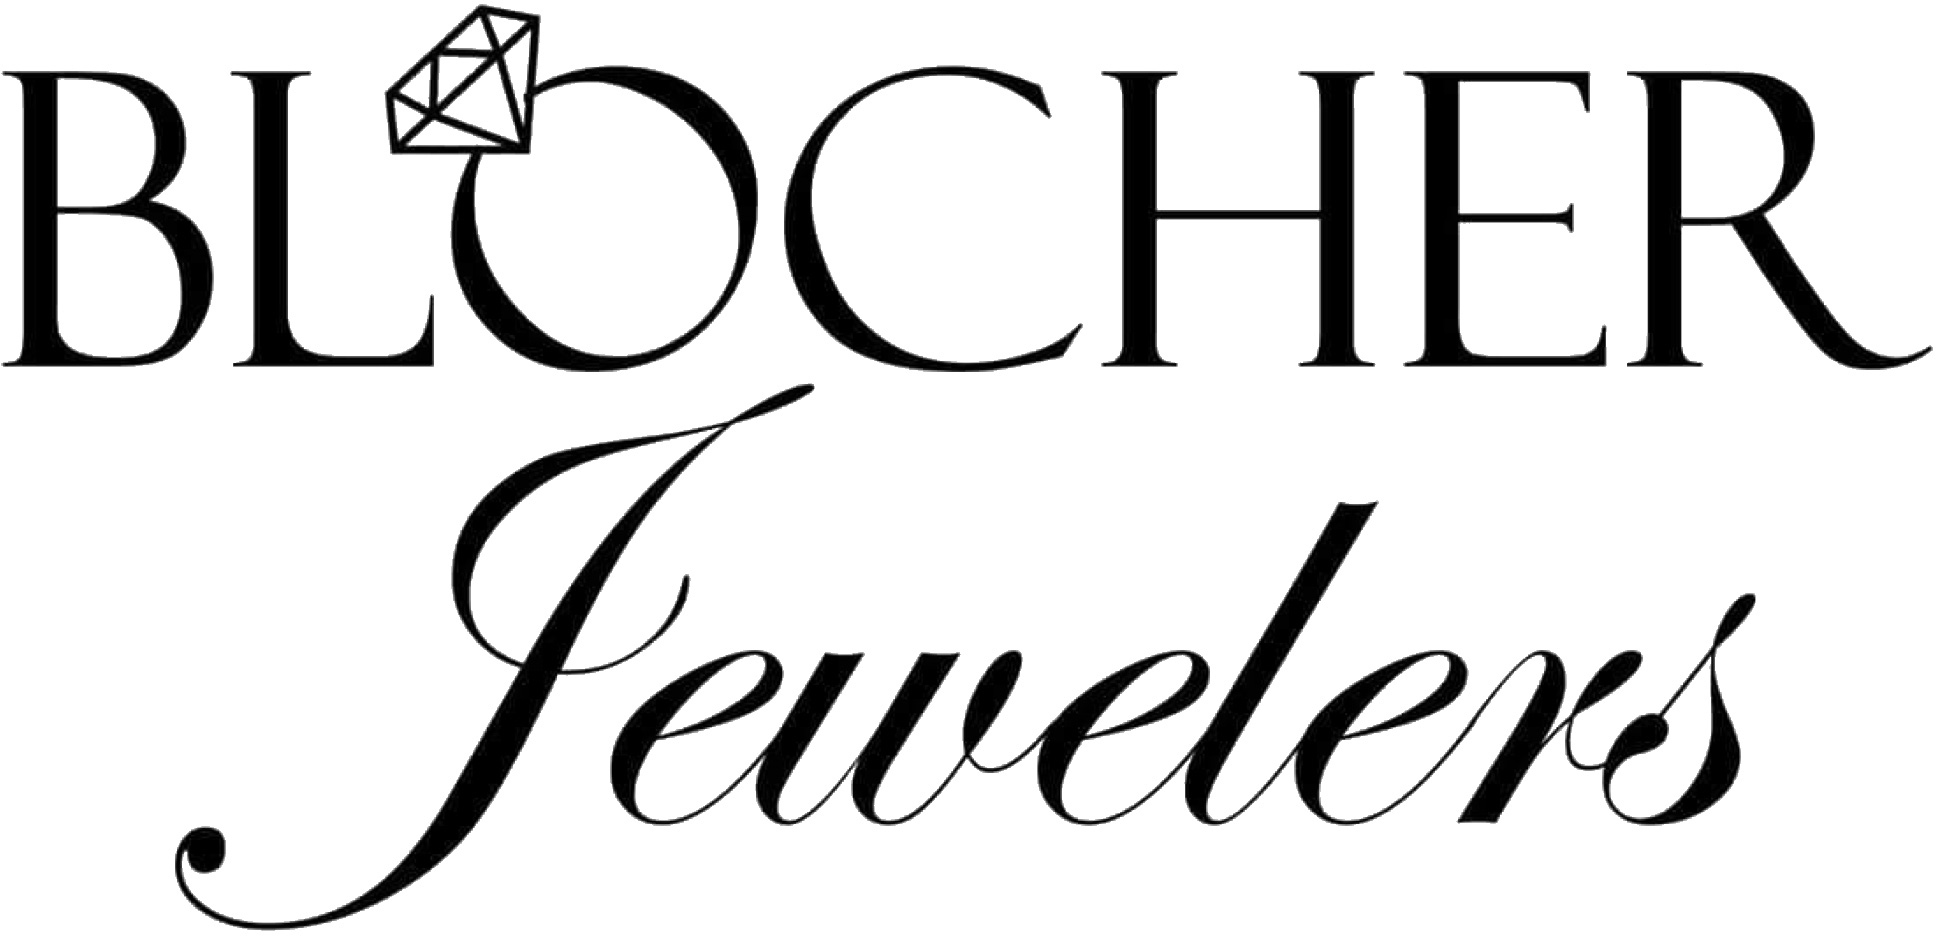 Blocher Jewelers